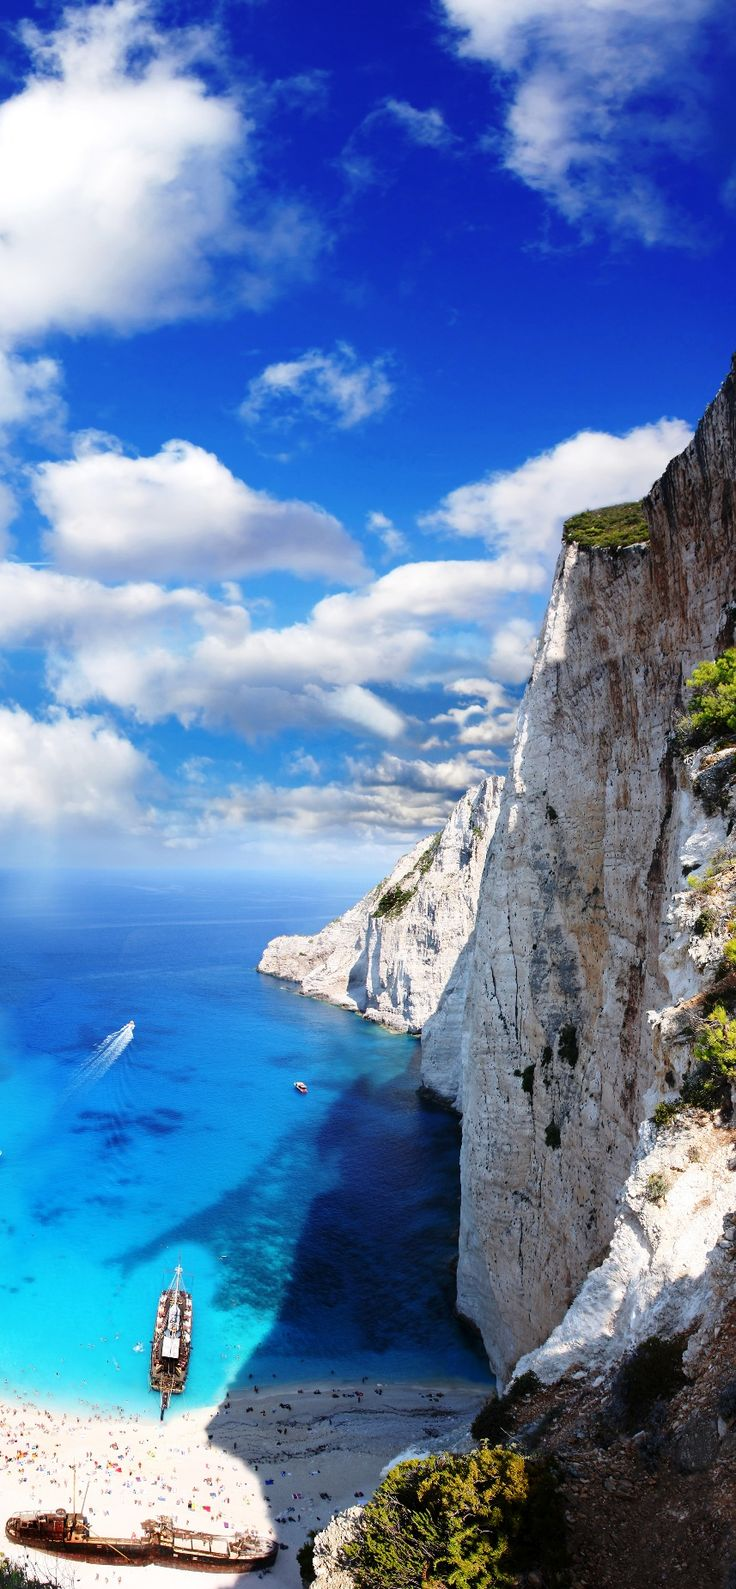 Navagio Beach, Zakynthos Island, Greece   - Explore the World with Travel Nerd Nici, one Country at a Time. http://TravelNerdNici.com